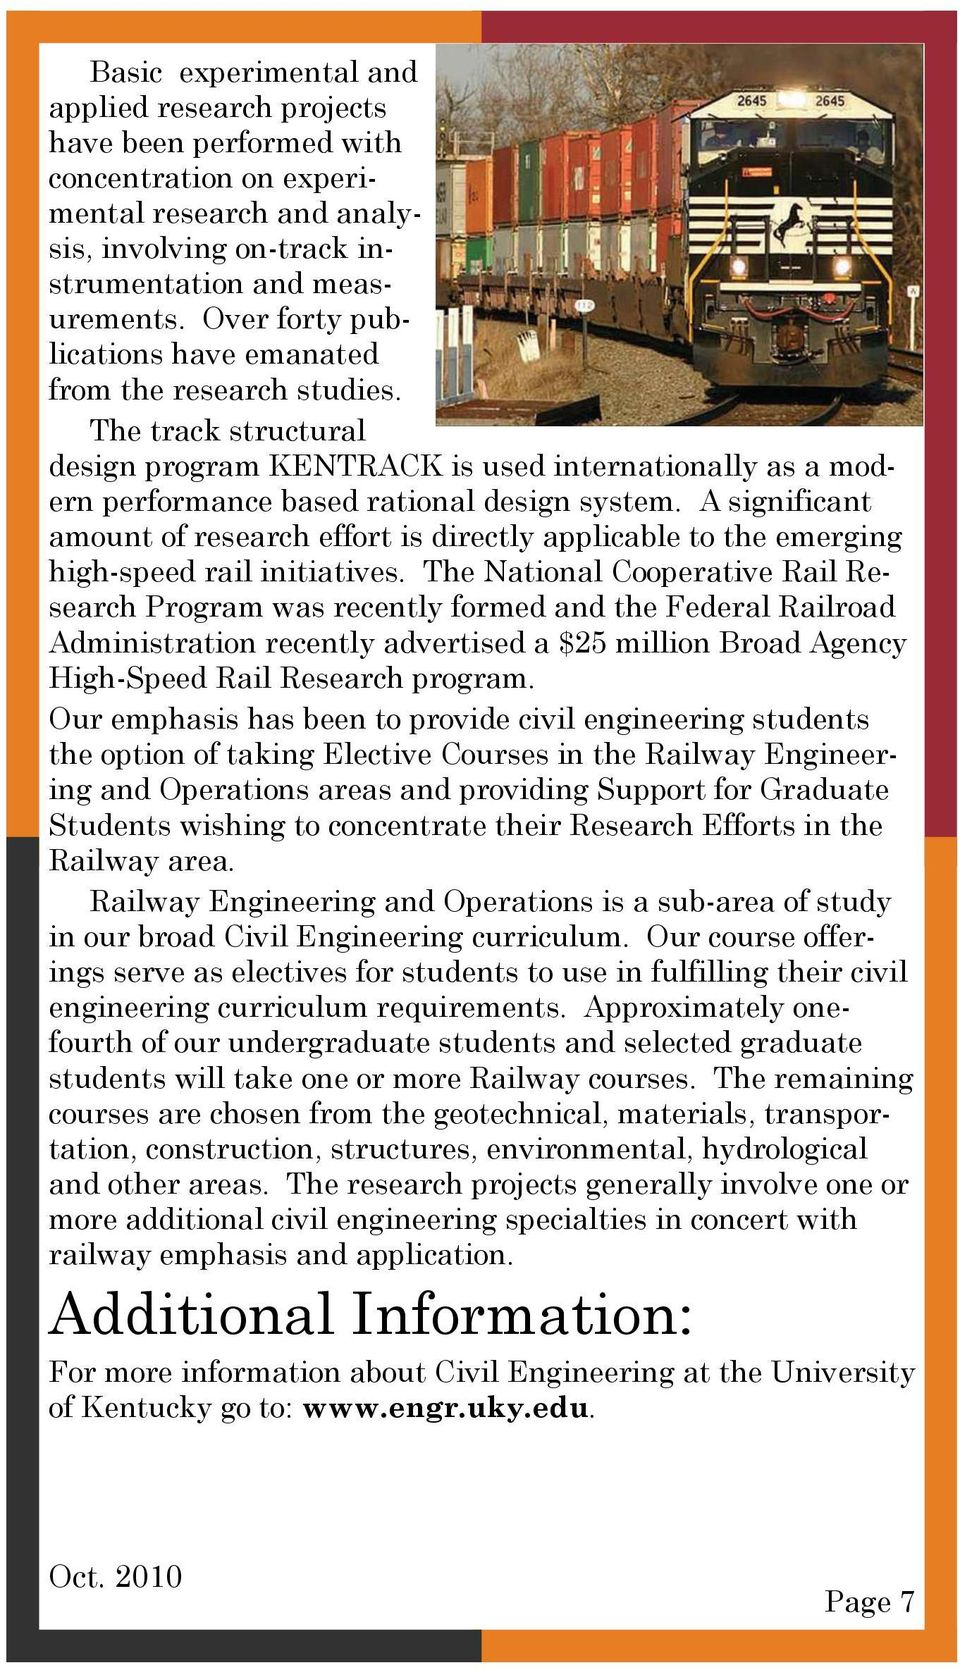 A significant amount of research effort is directly applicable to the emerging high-speed rail initiatives.